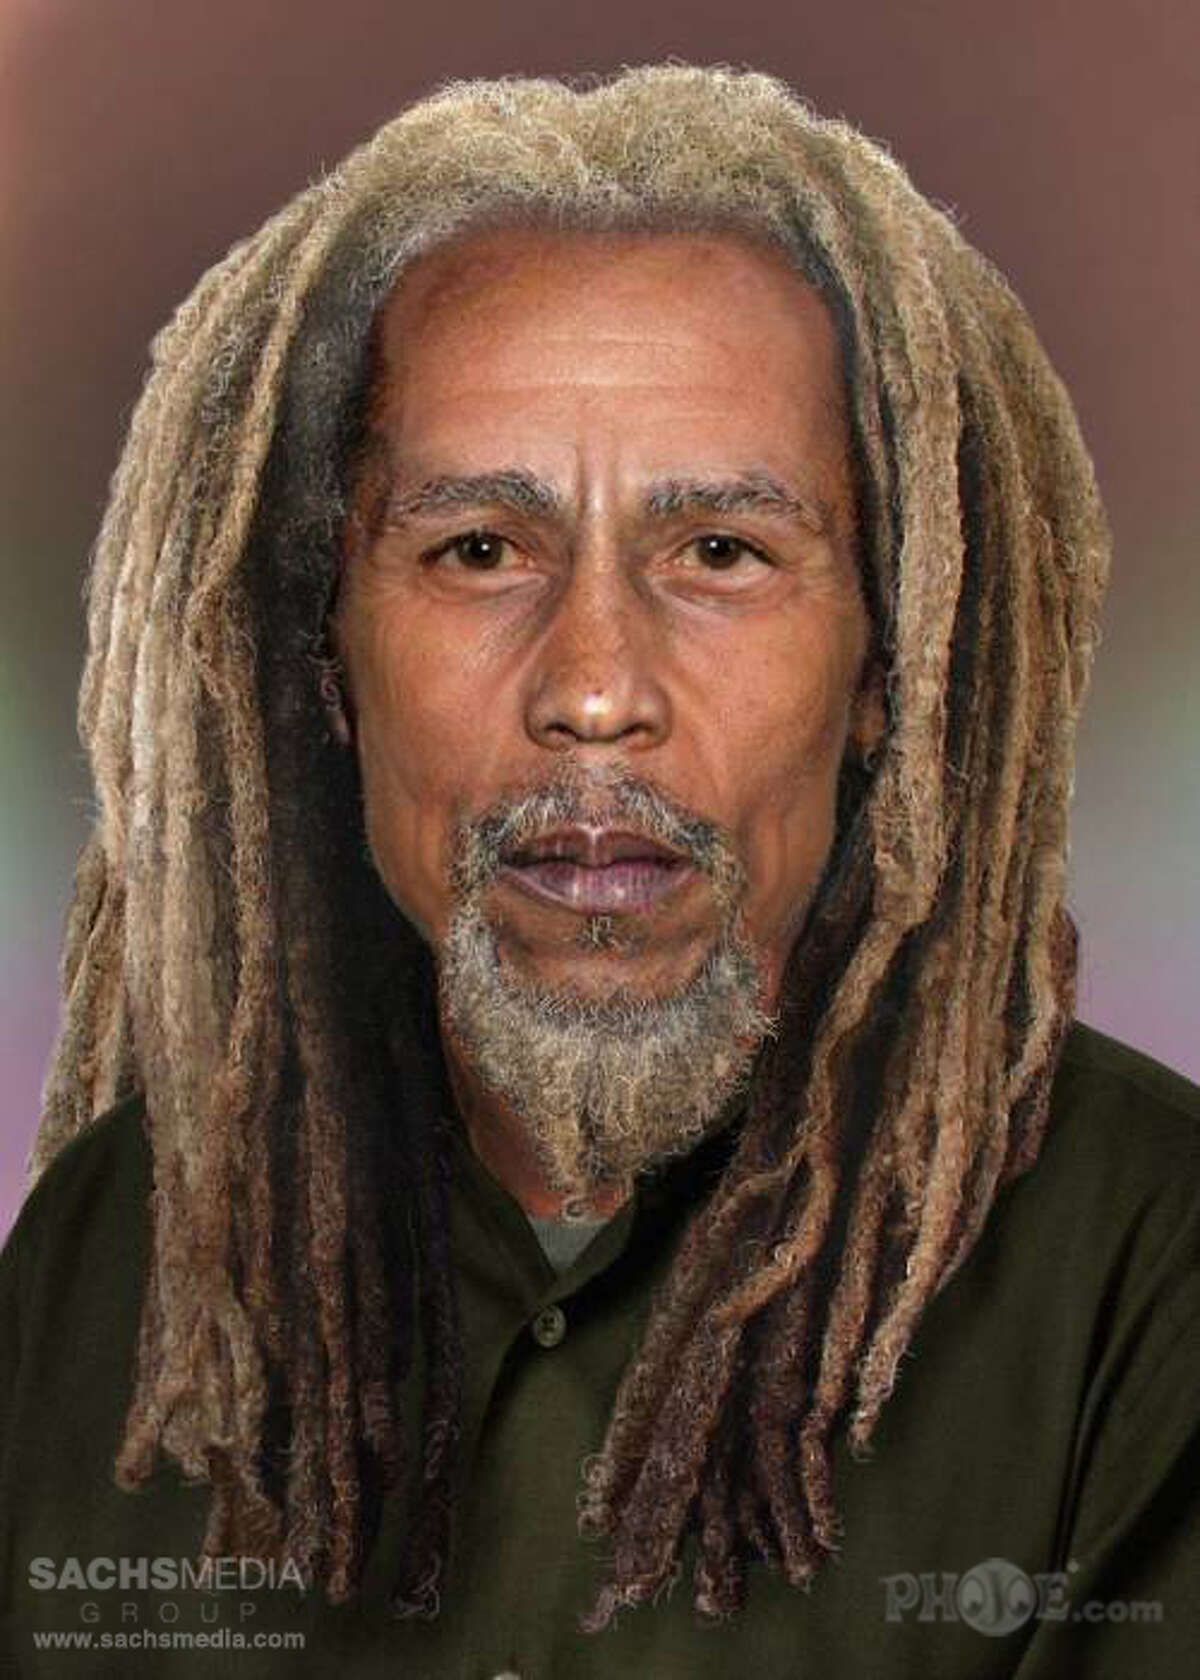 Bob Marley Singer/Songwriter Bob Marley and the Wailers- Died 1981 at the age of 36. SACHSMEDIA Group